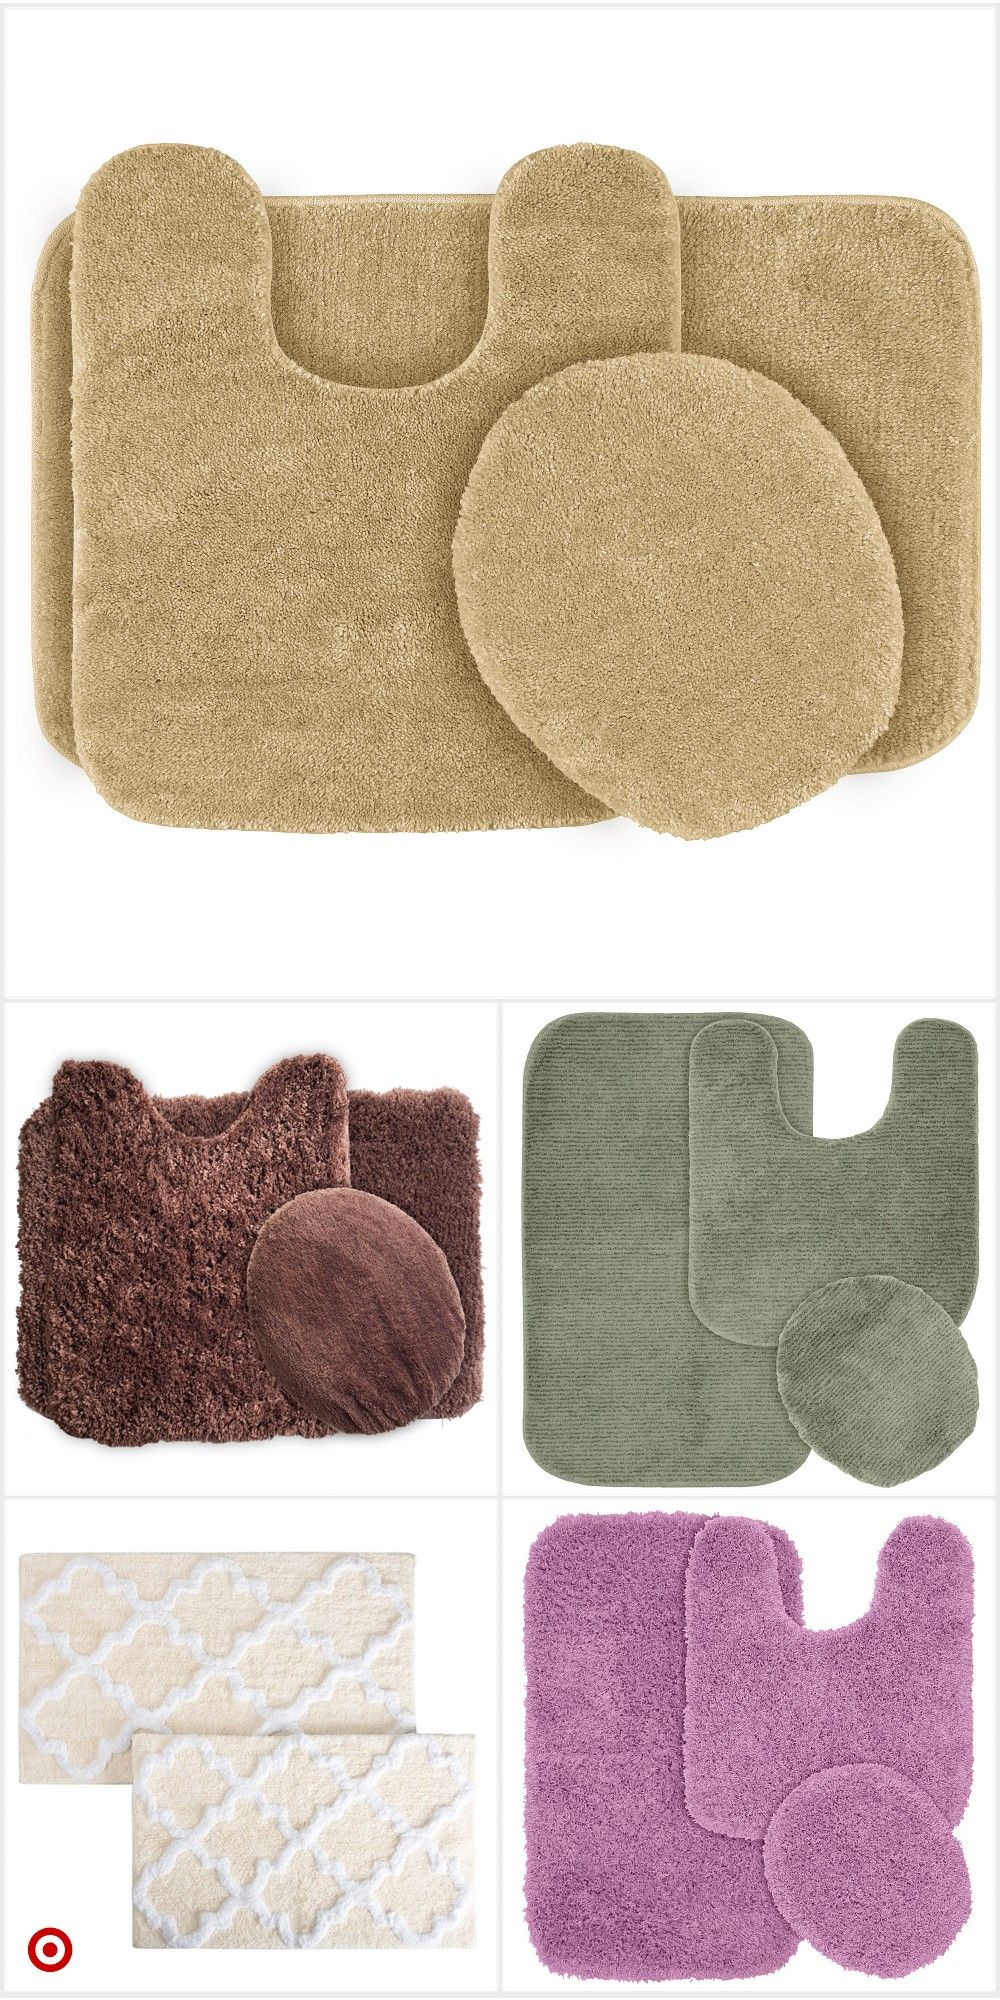 Shop Target For Bath Rug Set You Will Love At Great Low